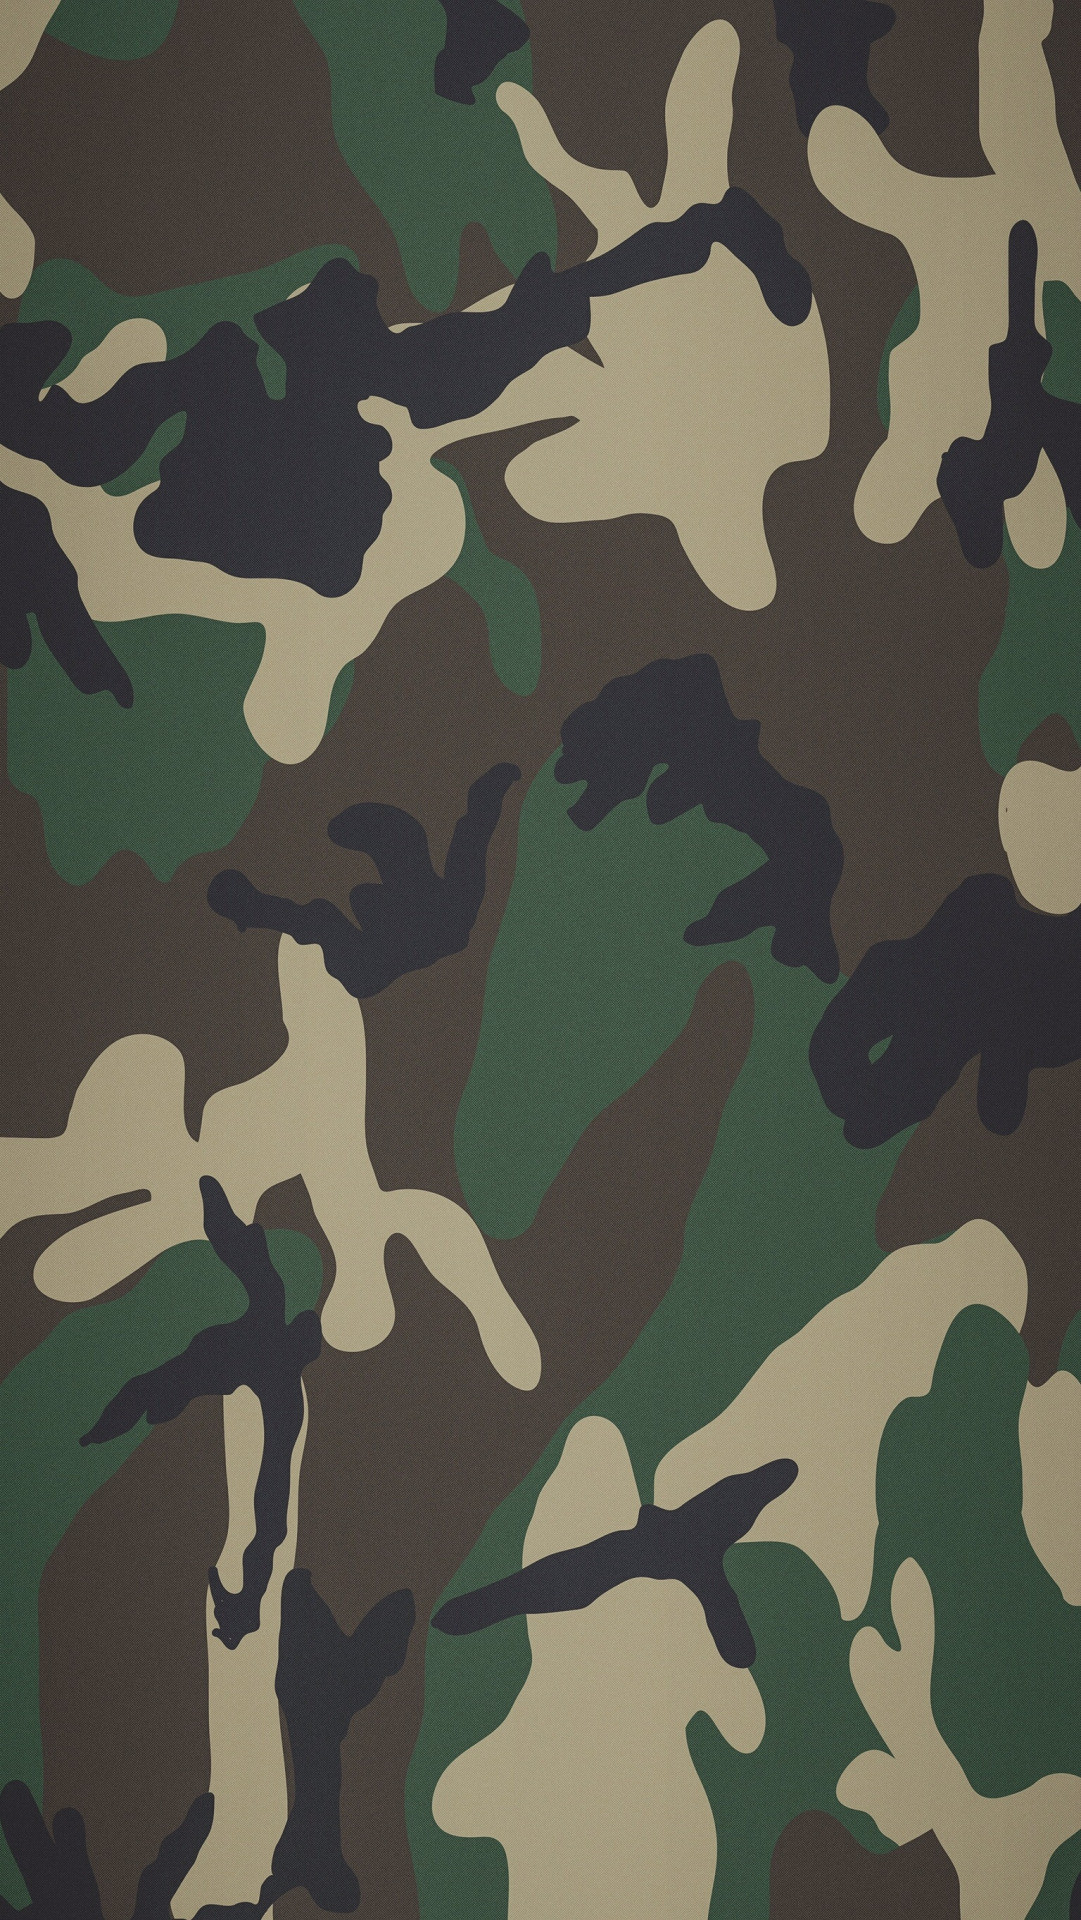 Res: 1081x1920, bape camo wallpaper iphone 6 #562830